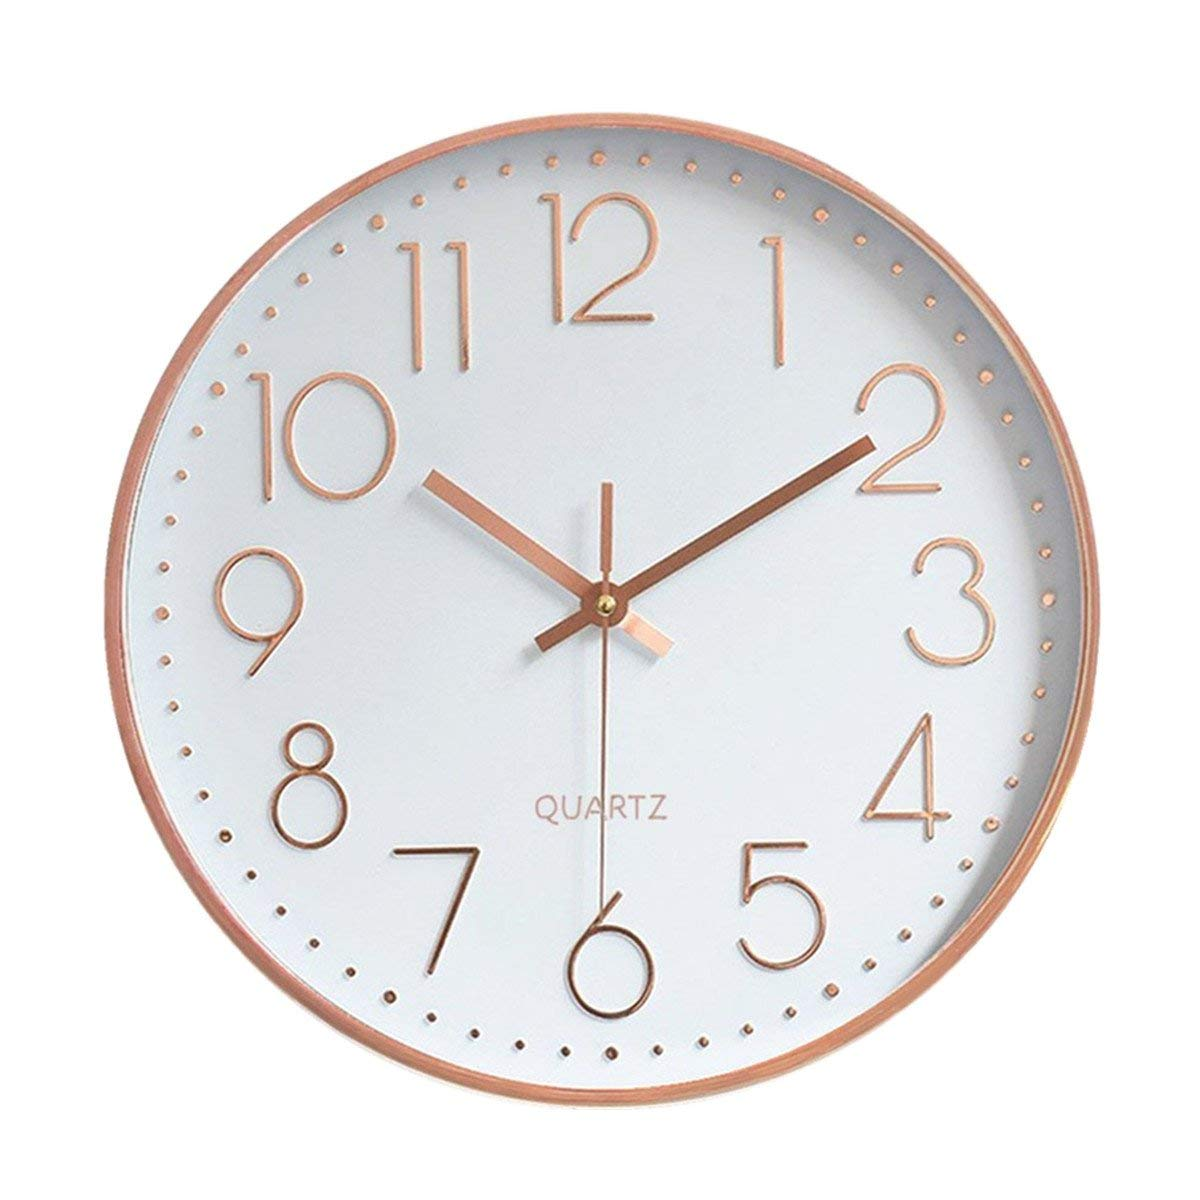 Foxtop Modern Wall Clock, Silent Non-Ticking Quartz Decorative Battery Operated Wall Clock for Living Room Home Office School w Rose Gold Plastic Frame Glass Cover 12 inch, Arabic Numeral